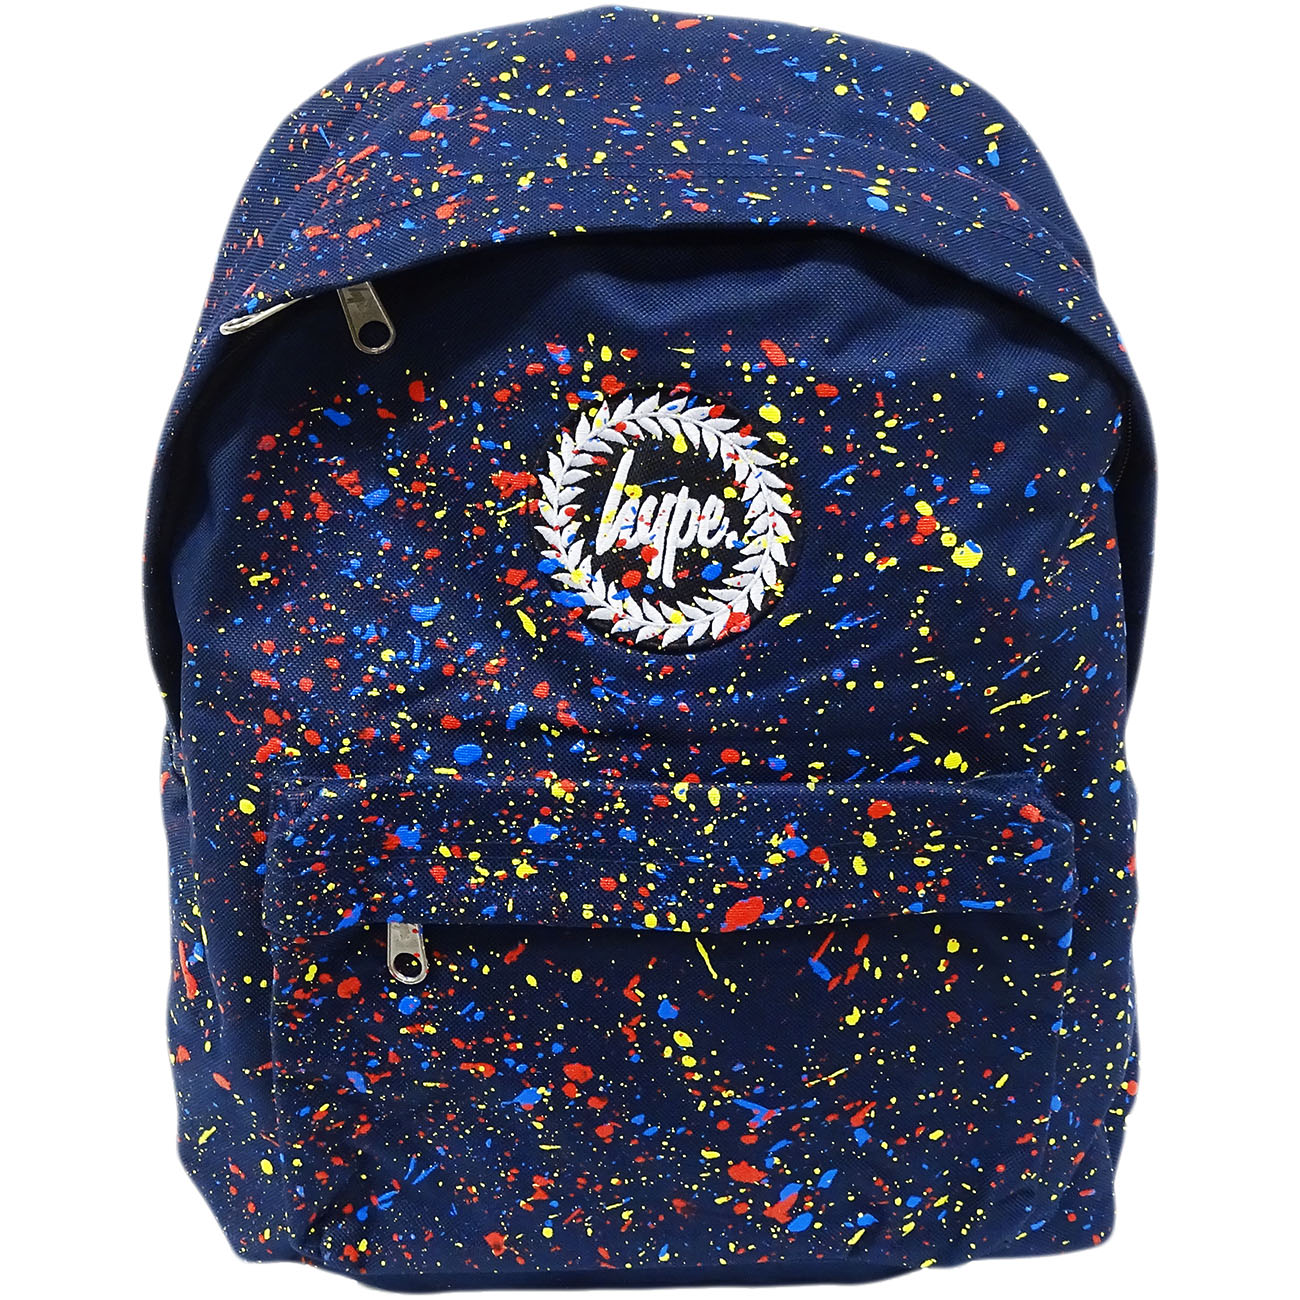 Hype Backpack Bag Navy and Multi Speckled